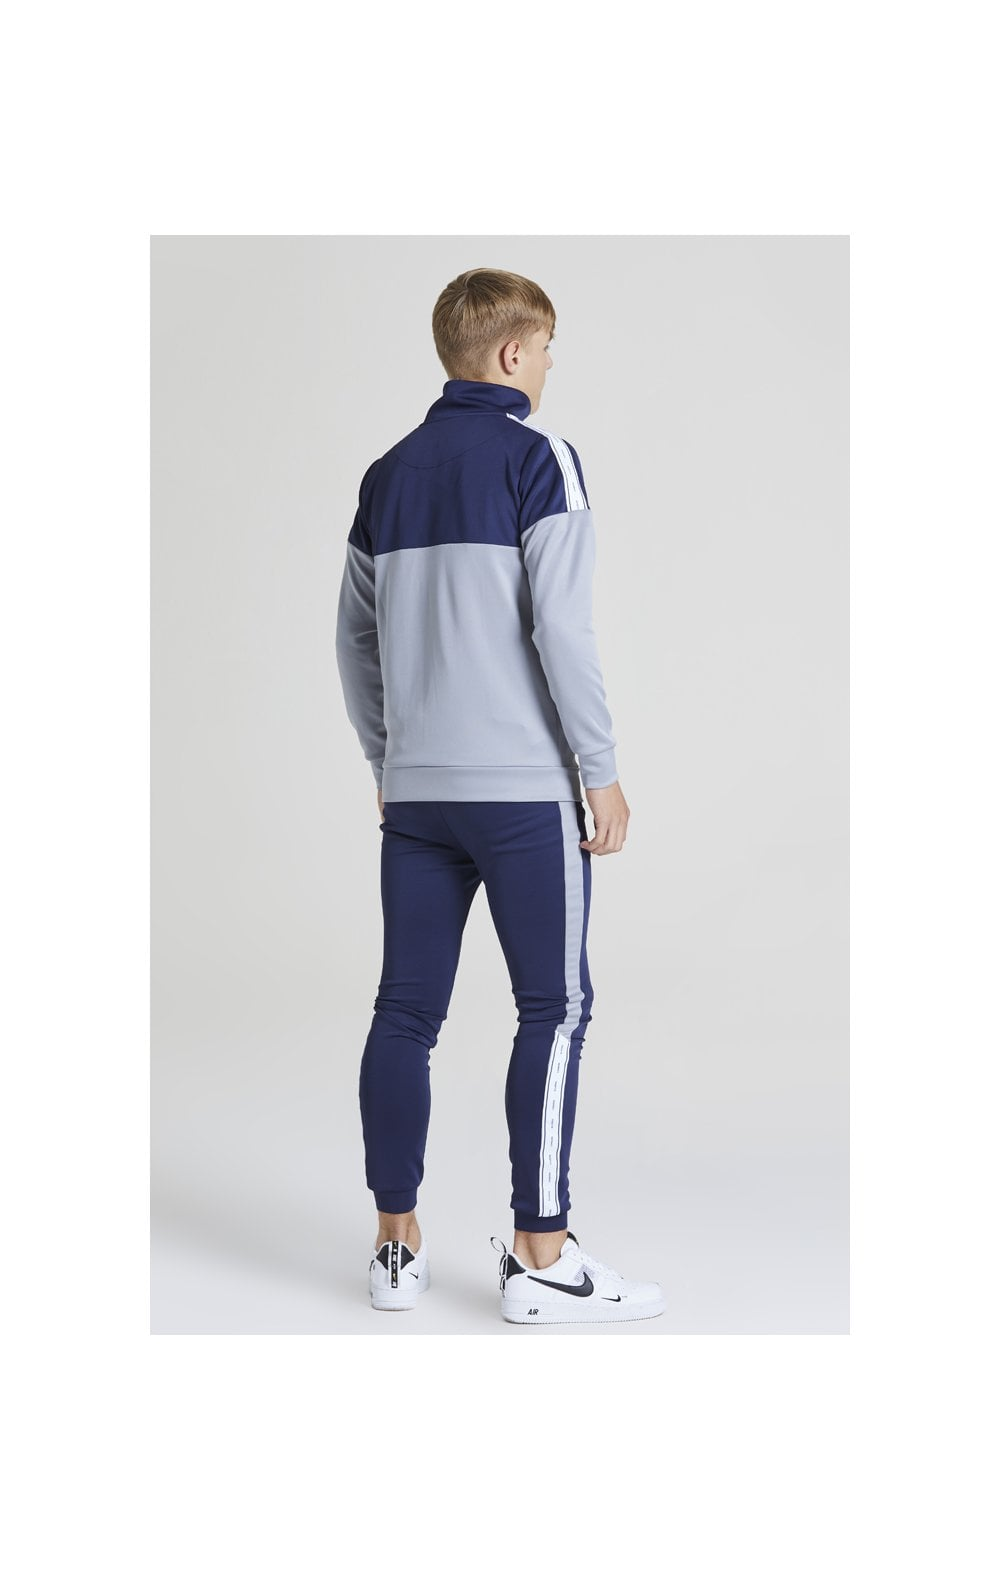 Illusive London Jogger à Bande - Bleu Marine et Gris (5)